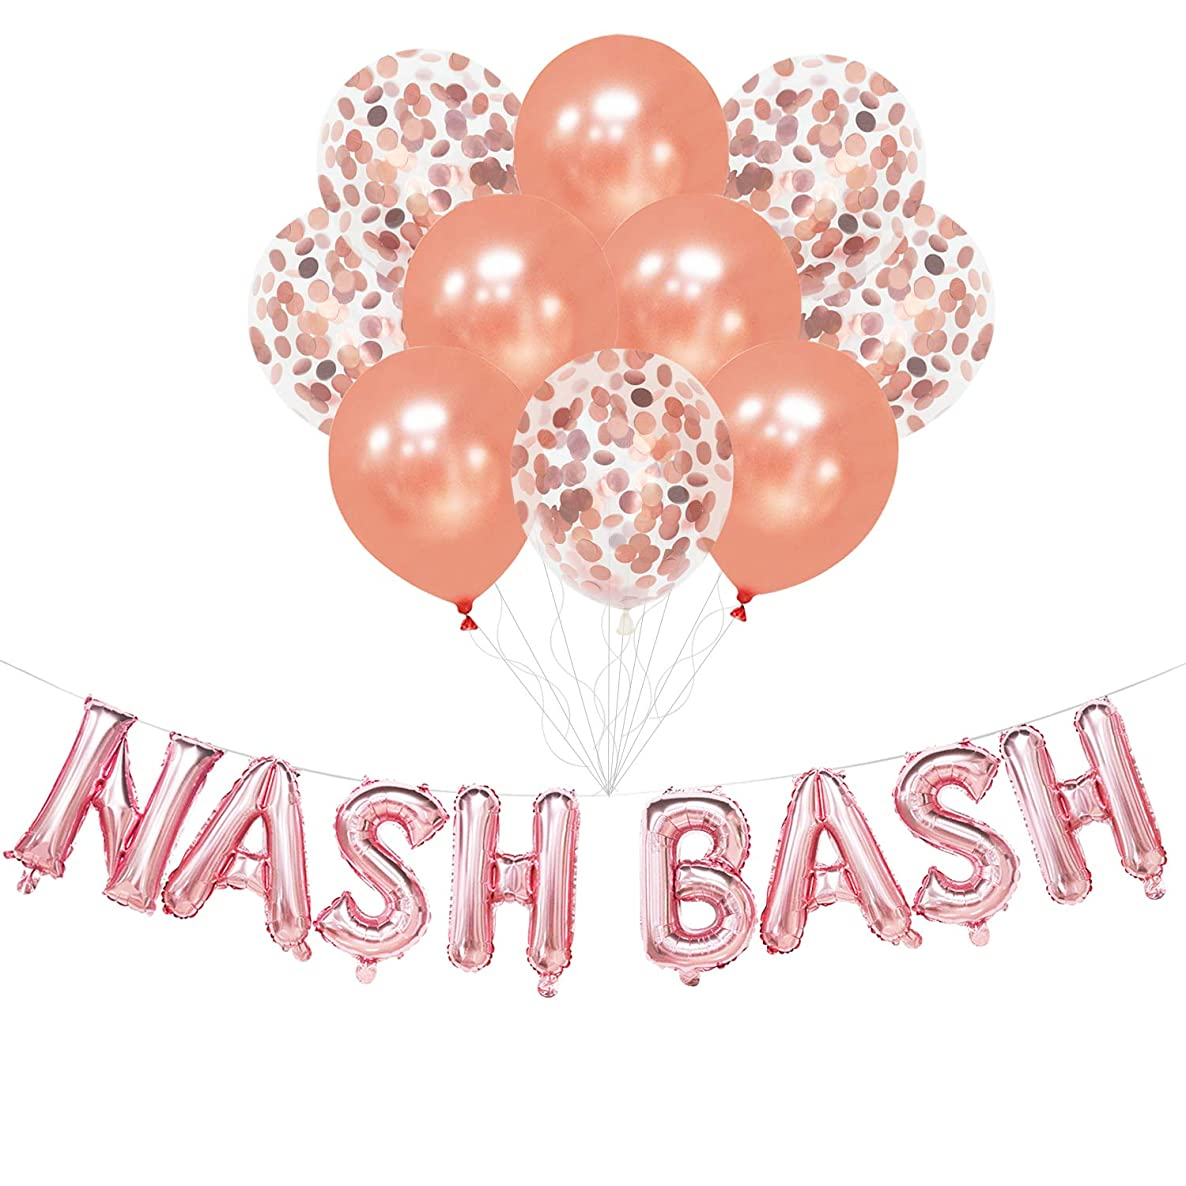 Nash Bash Balloons - Nash Bash Banner - Nash Bash Decorations for Bachelorette Party, Hen Party, Bridal Shower, Engagement Party